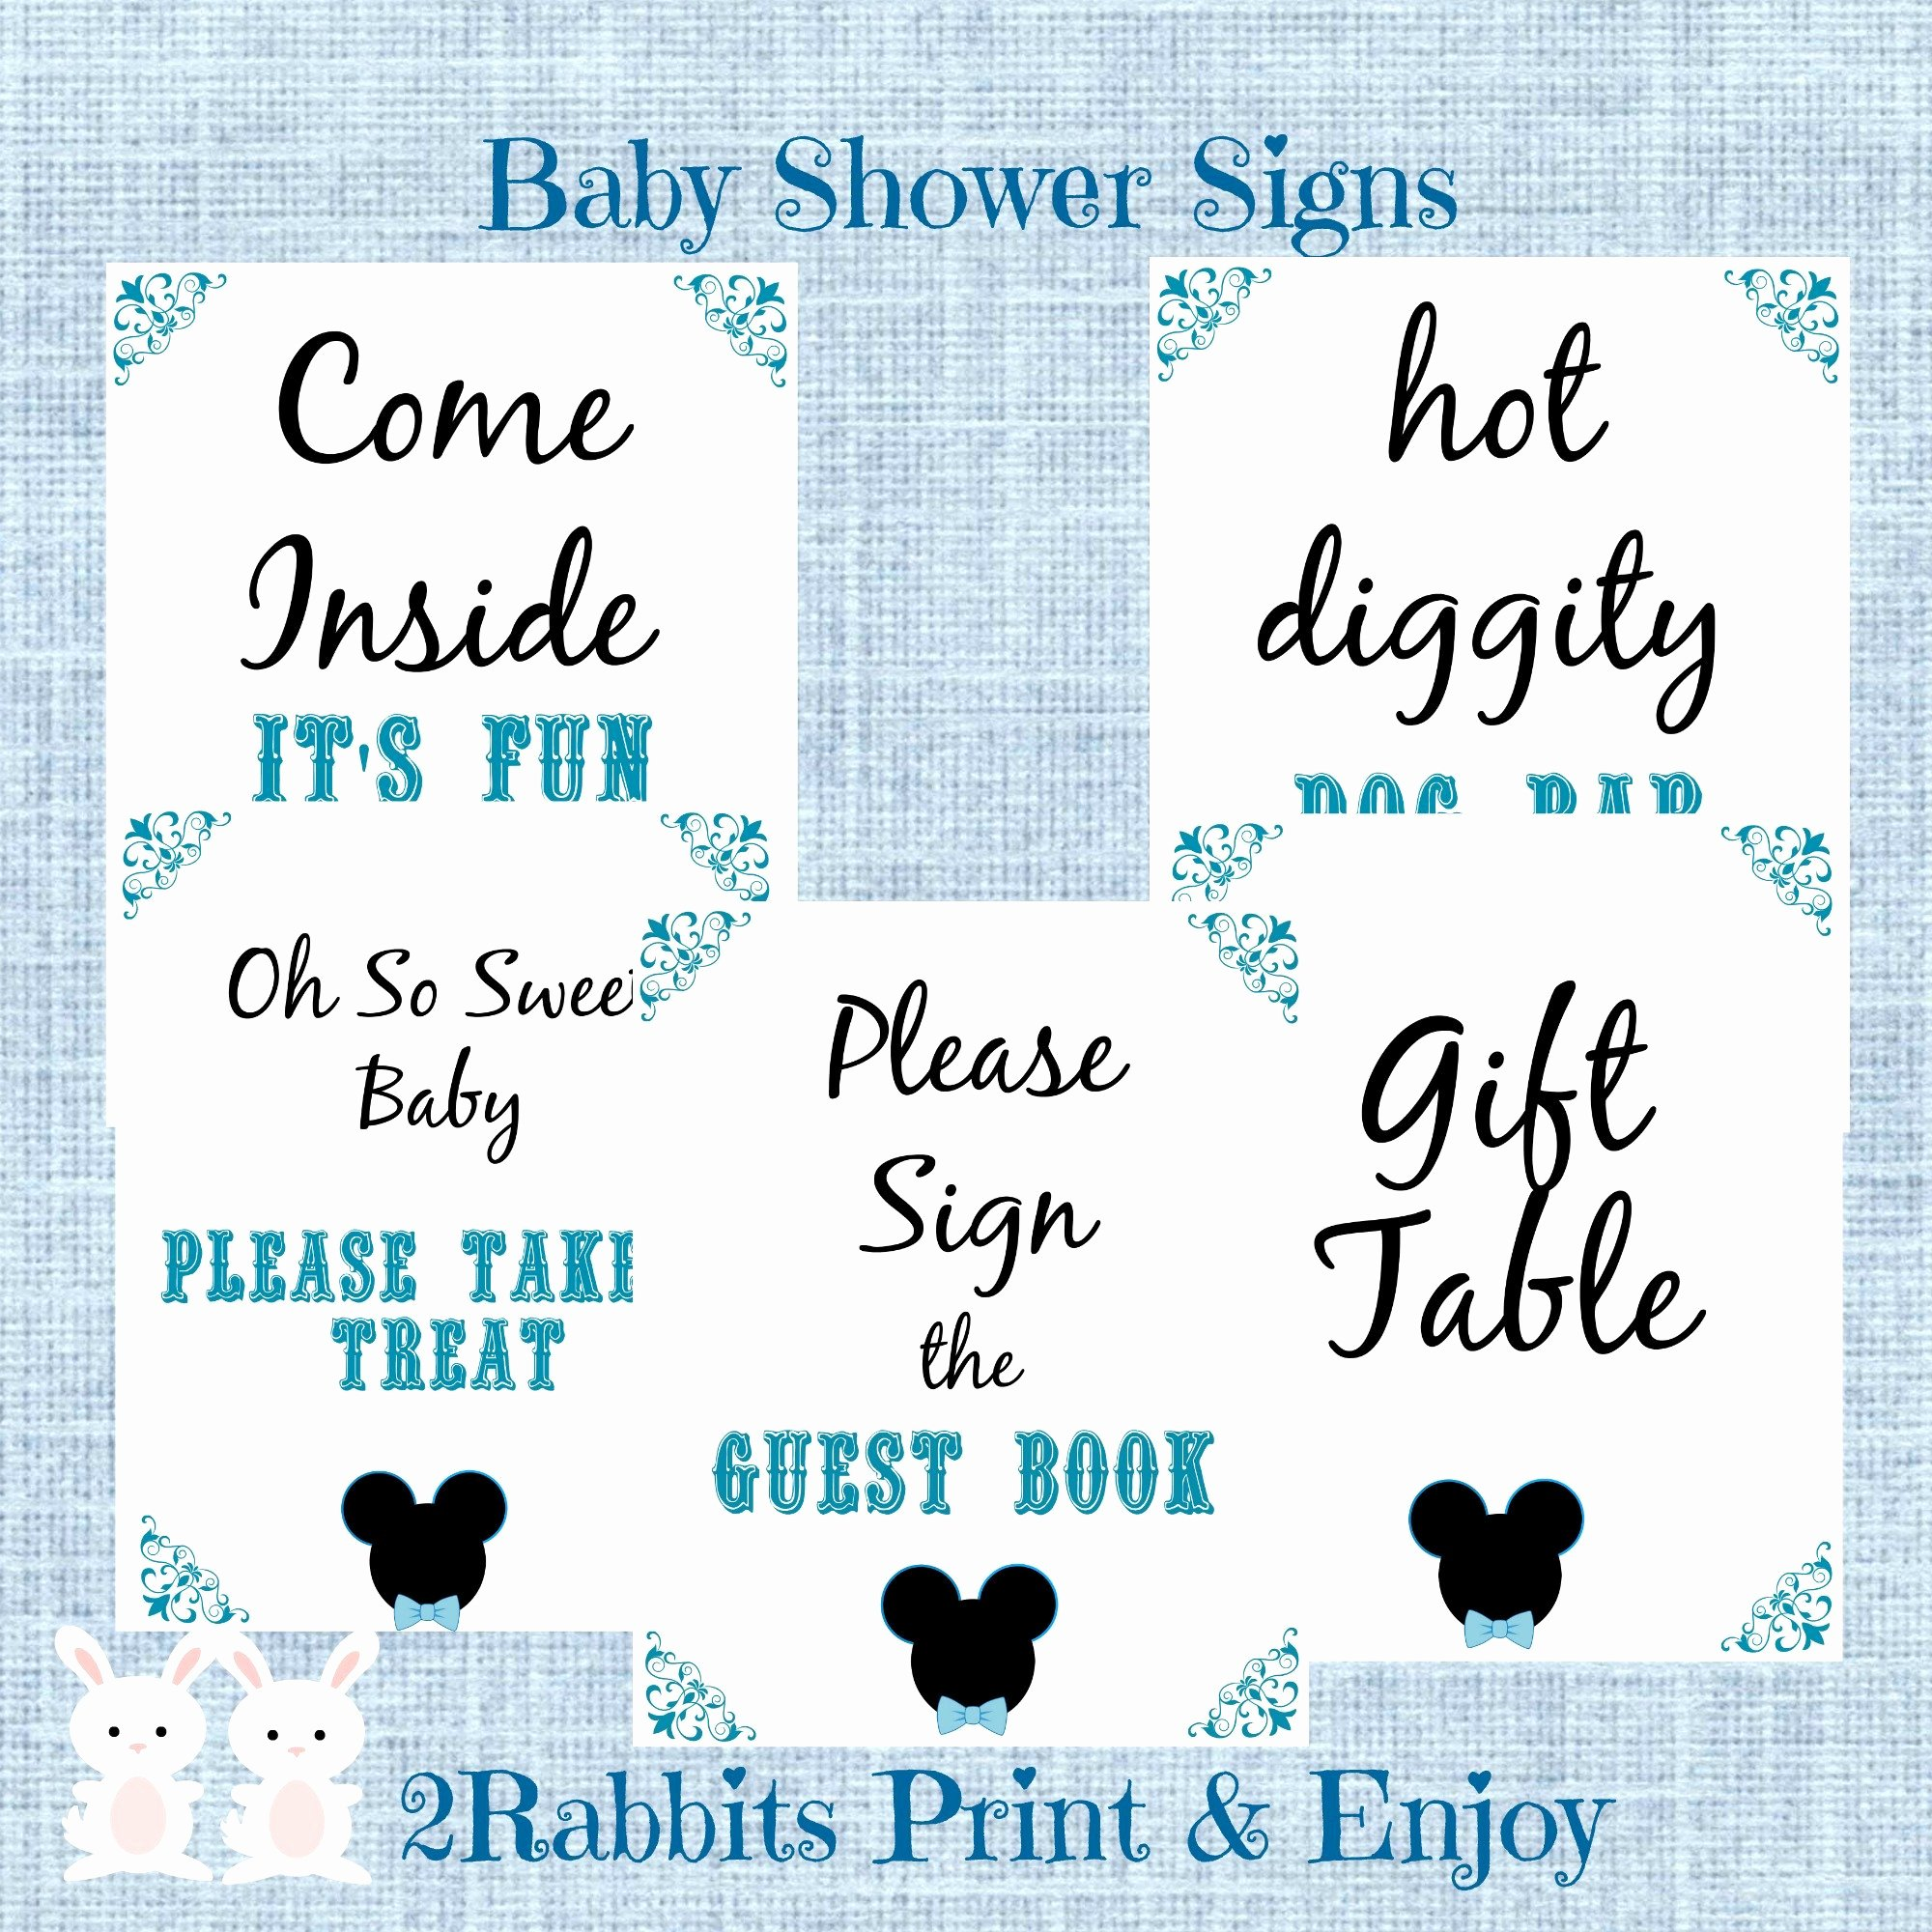 Baby Shower Signs Printable Luxury Mickey Mouse Babyshower Ideas My Practical Baby Shower Guide